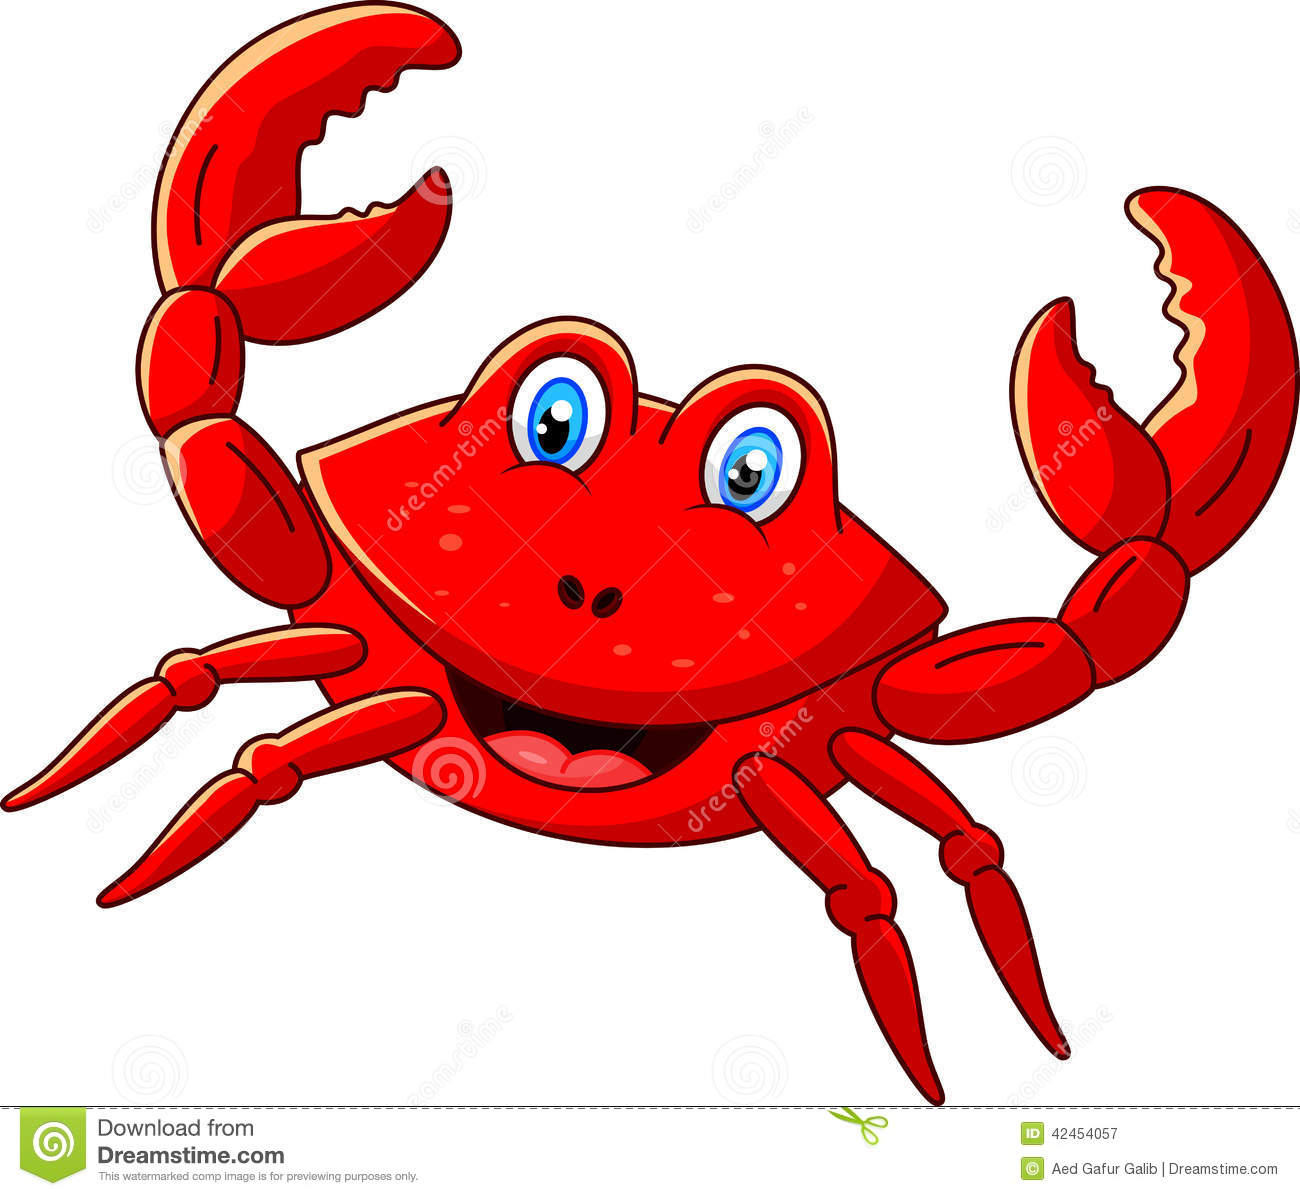 funny lobster clipart - photo #46